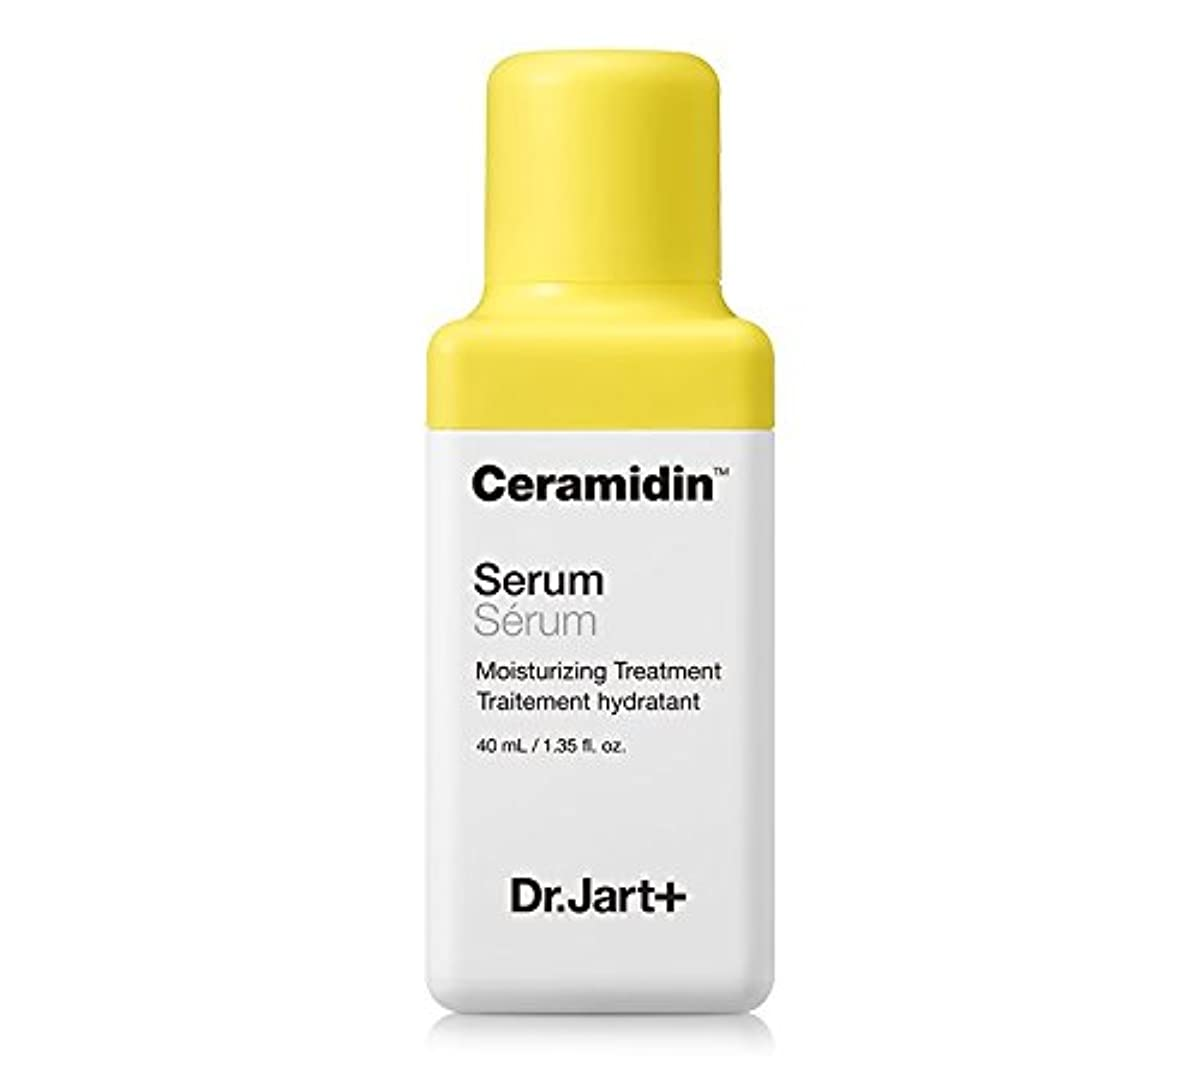 慢性的裕福な約設定Dr. Jart New Ceramidin Serum 40ml Highly-intensive filler serum 高強度充填剤血清